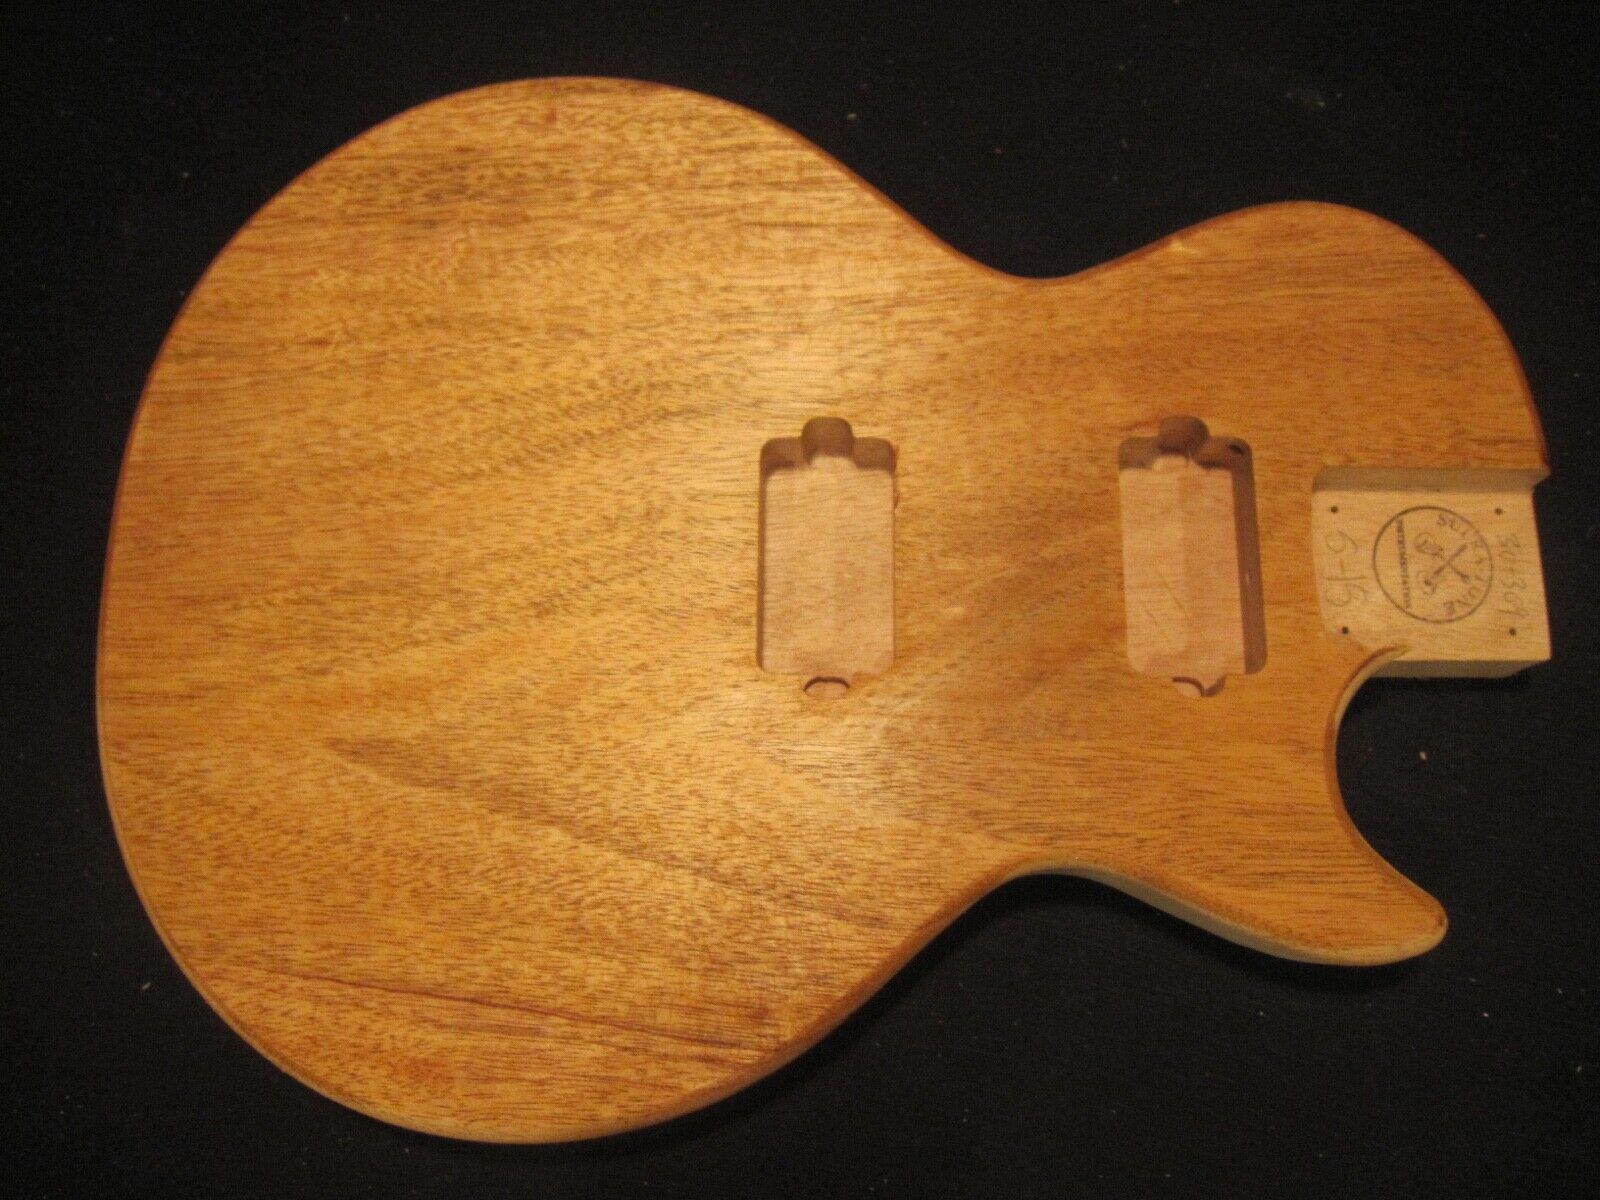 Корпуса (Запчасти для гитары) Les Paul type Body, #A 30-309, US MADE, Unfinished,  Mahogany